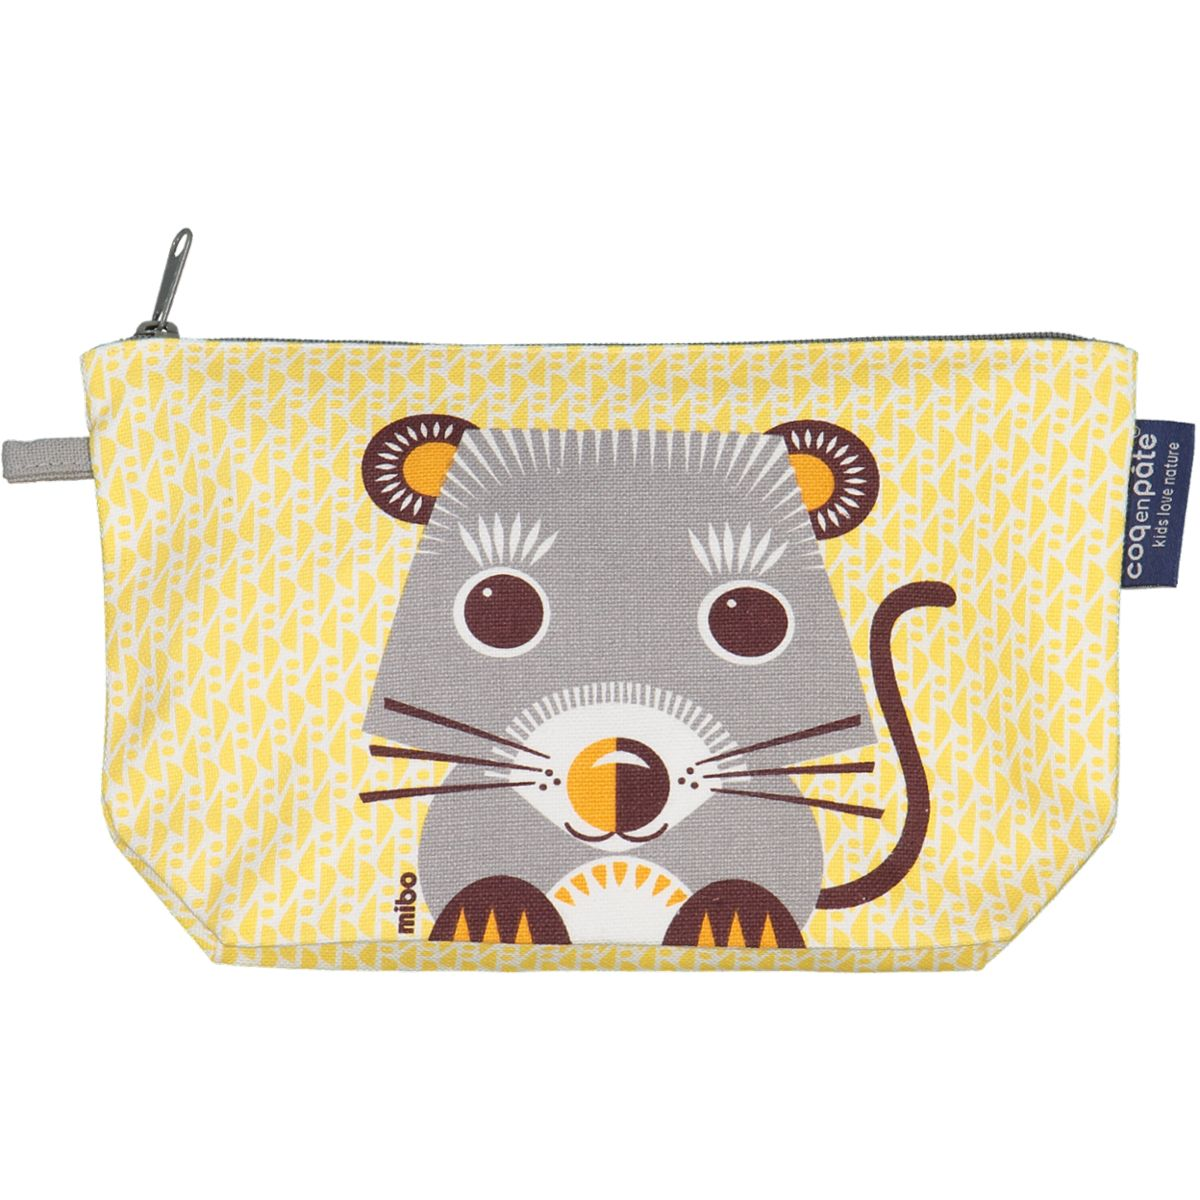 Vole pencil case